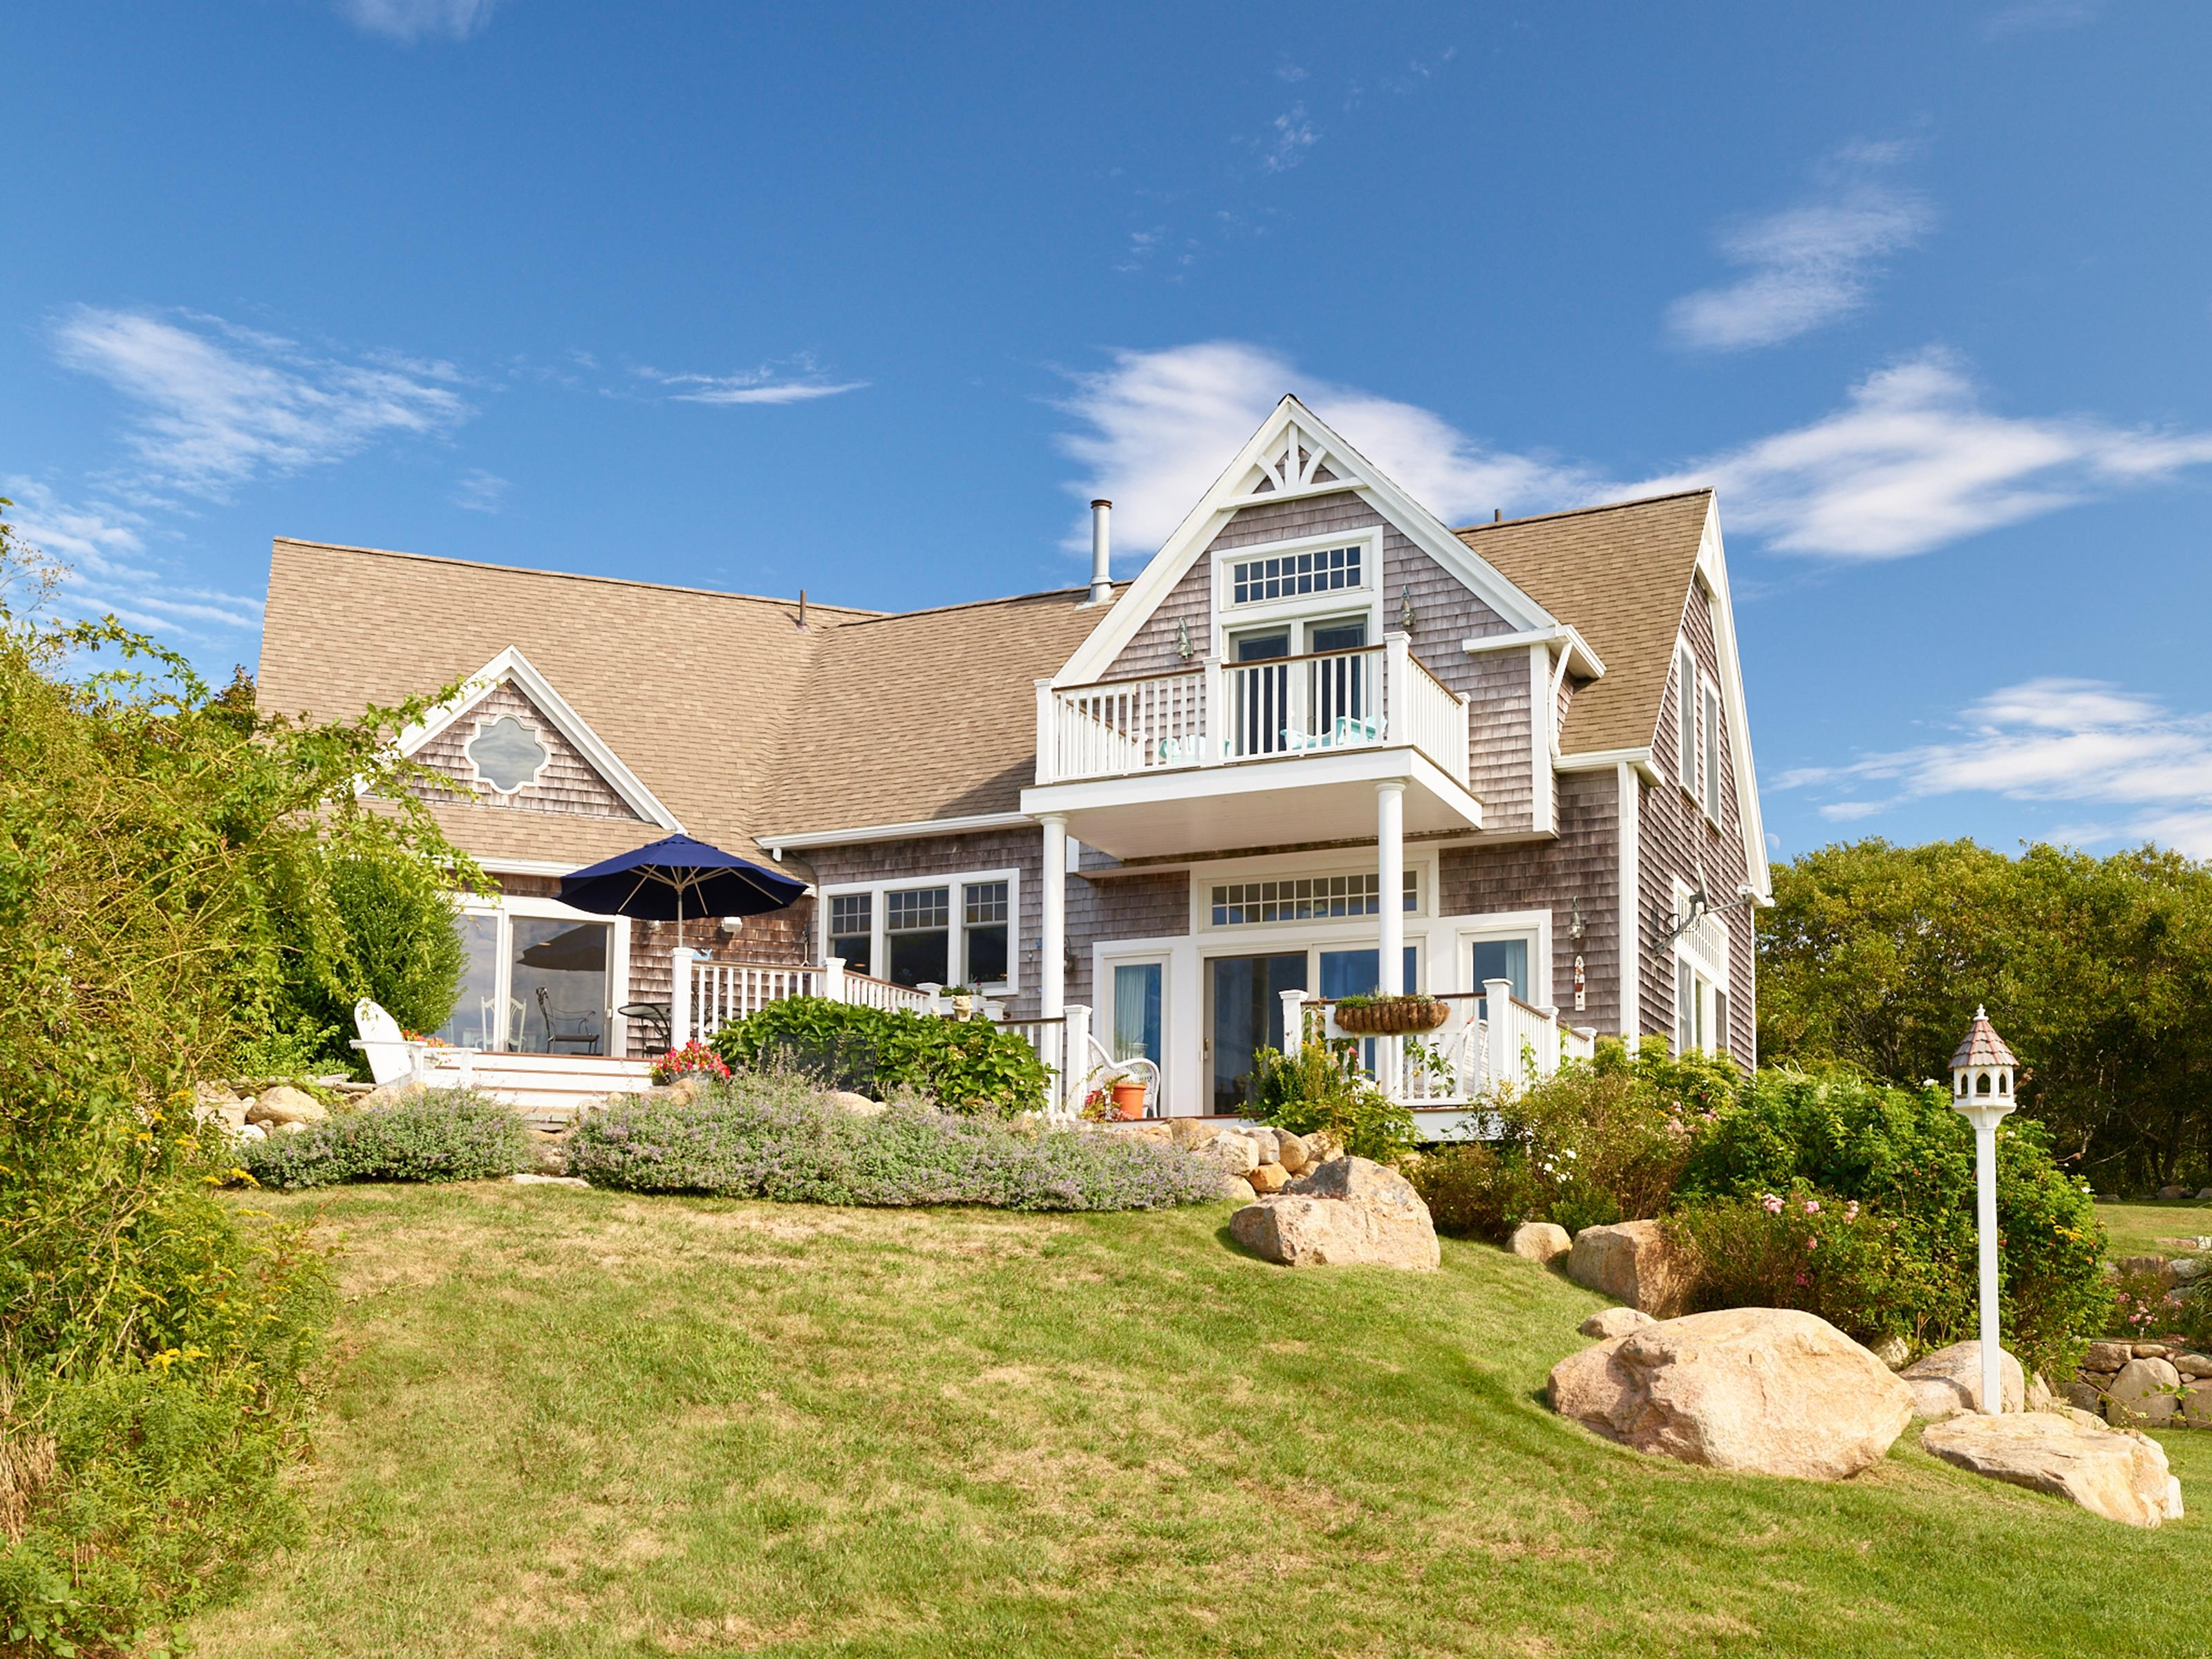 Single Family Home for Sale at Fallon 1507 West Side Road Block Island, Rhode Island, 02807 United States